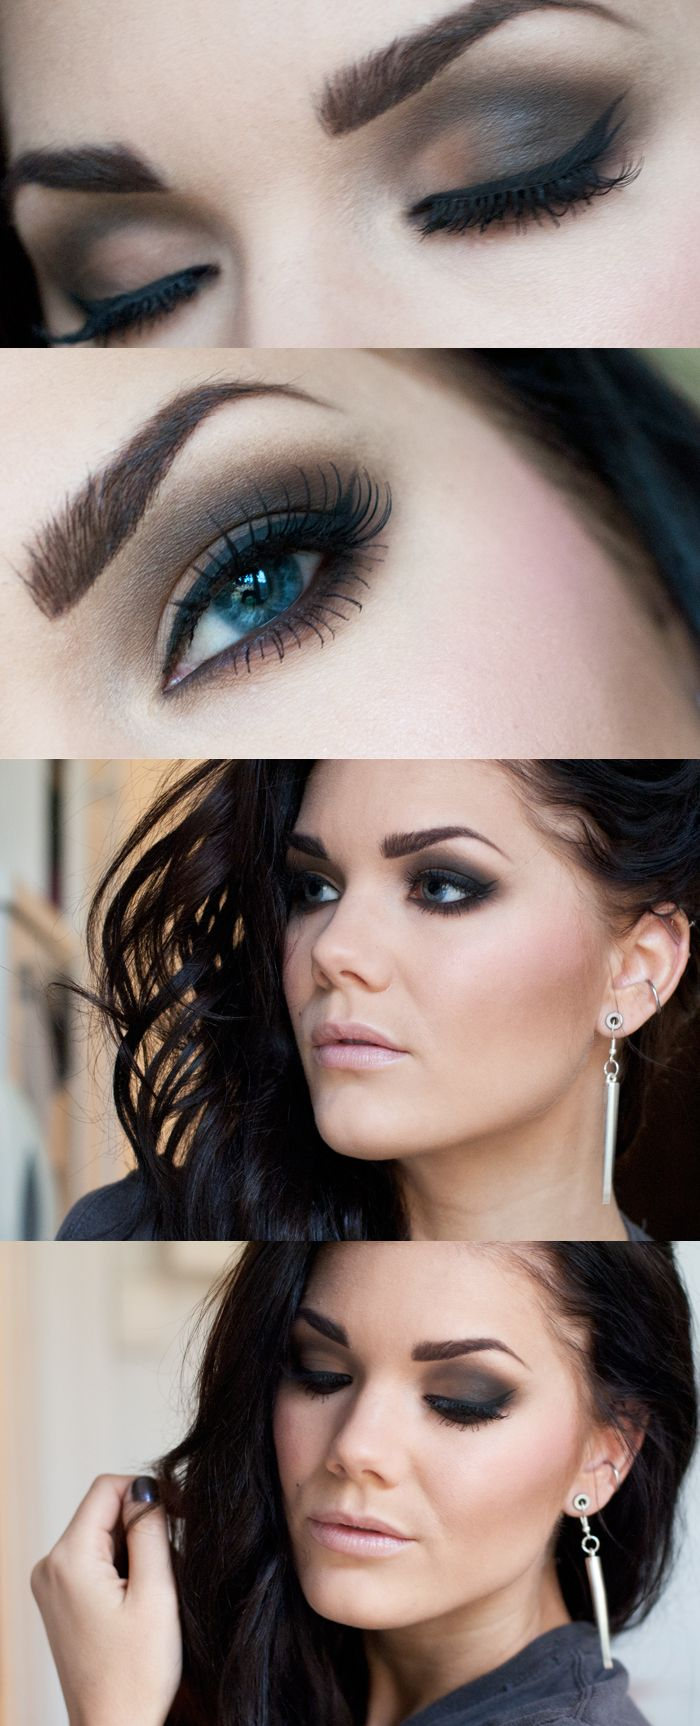 Linda hallberg makeup pinterest linda hallberg makeup and